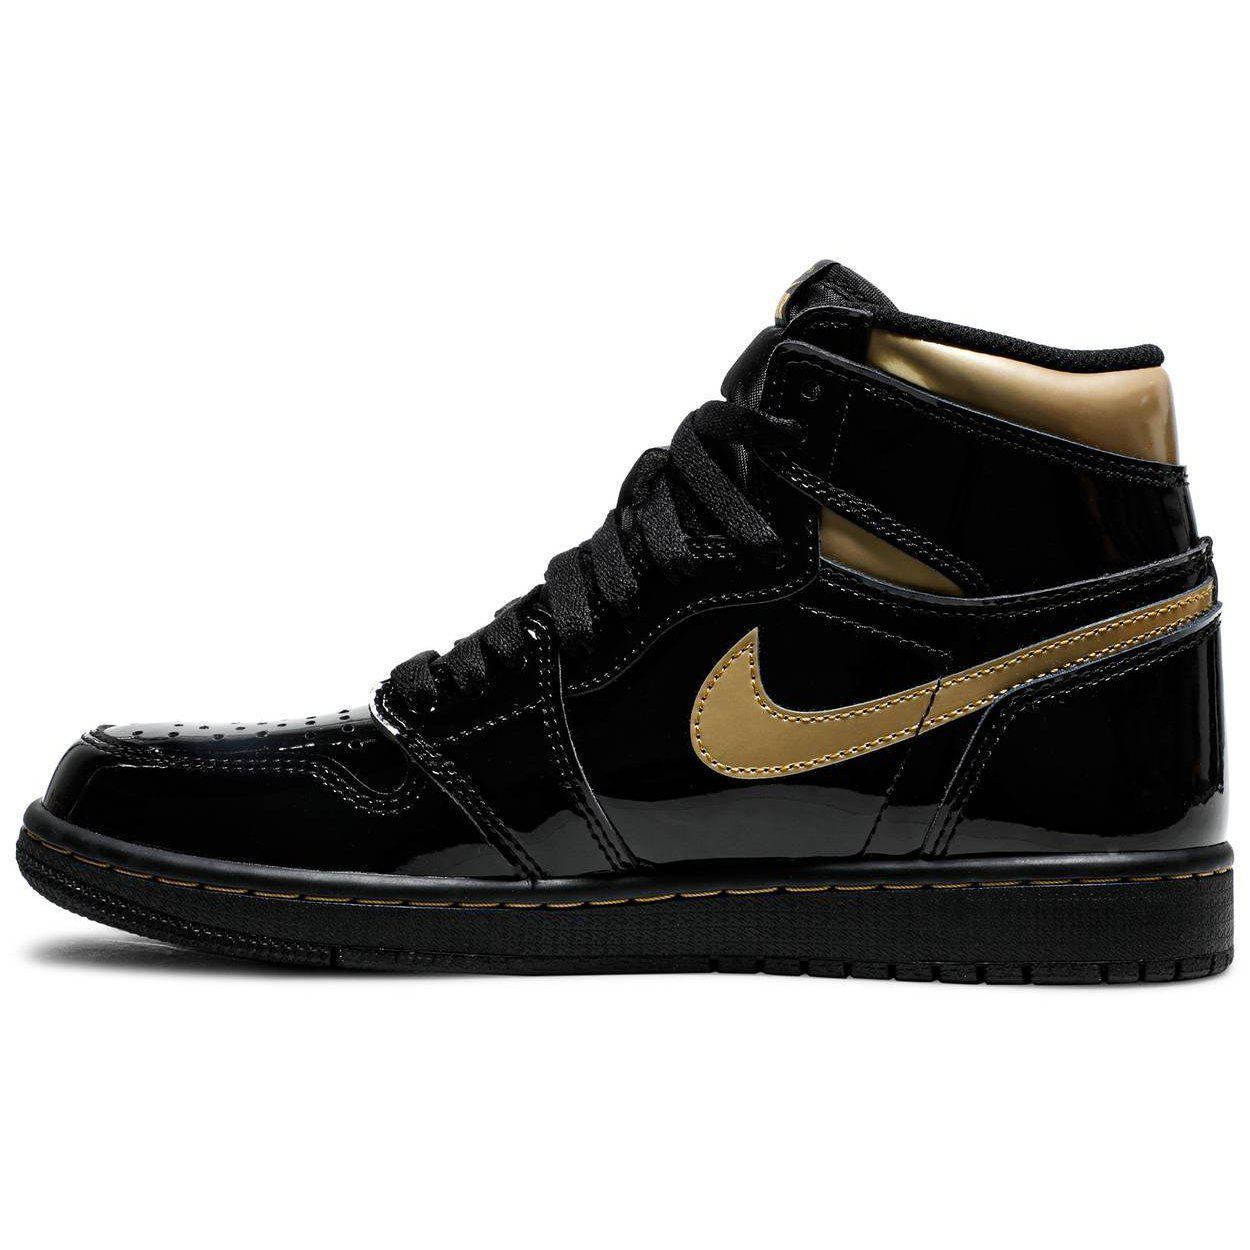 Nike Air Jordan 1 Retro High OG 'Black Metallic Gold' | Waves Never Die | Nike | Sneakers